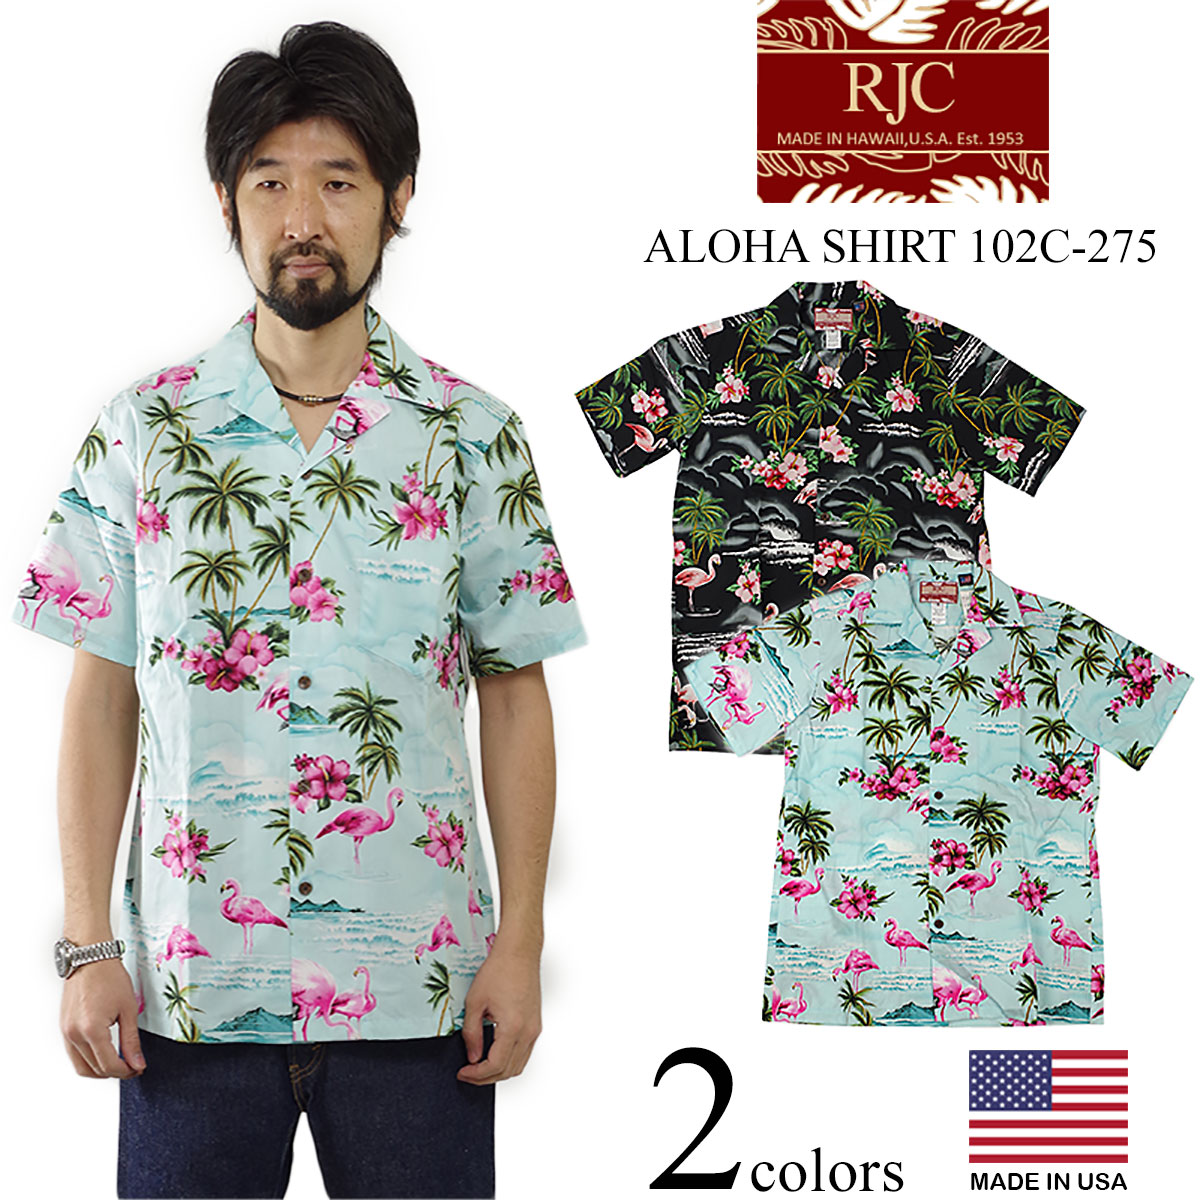 c5adea24 Robert J Clancy RJC short sleeves Hawaiian shirt #102C-275 Hawaiian product  made in ...